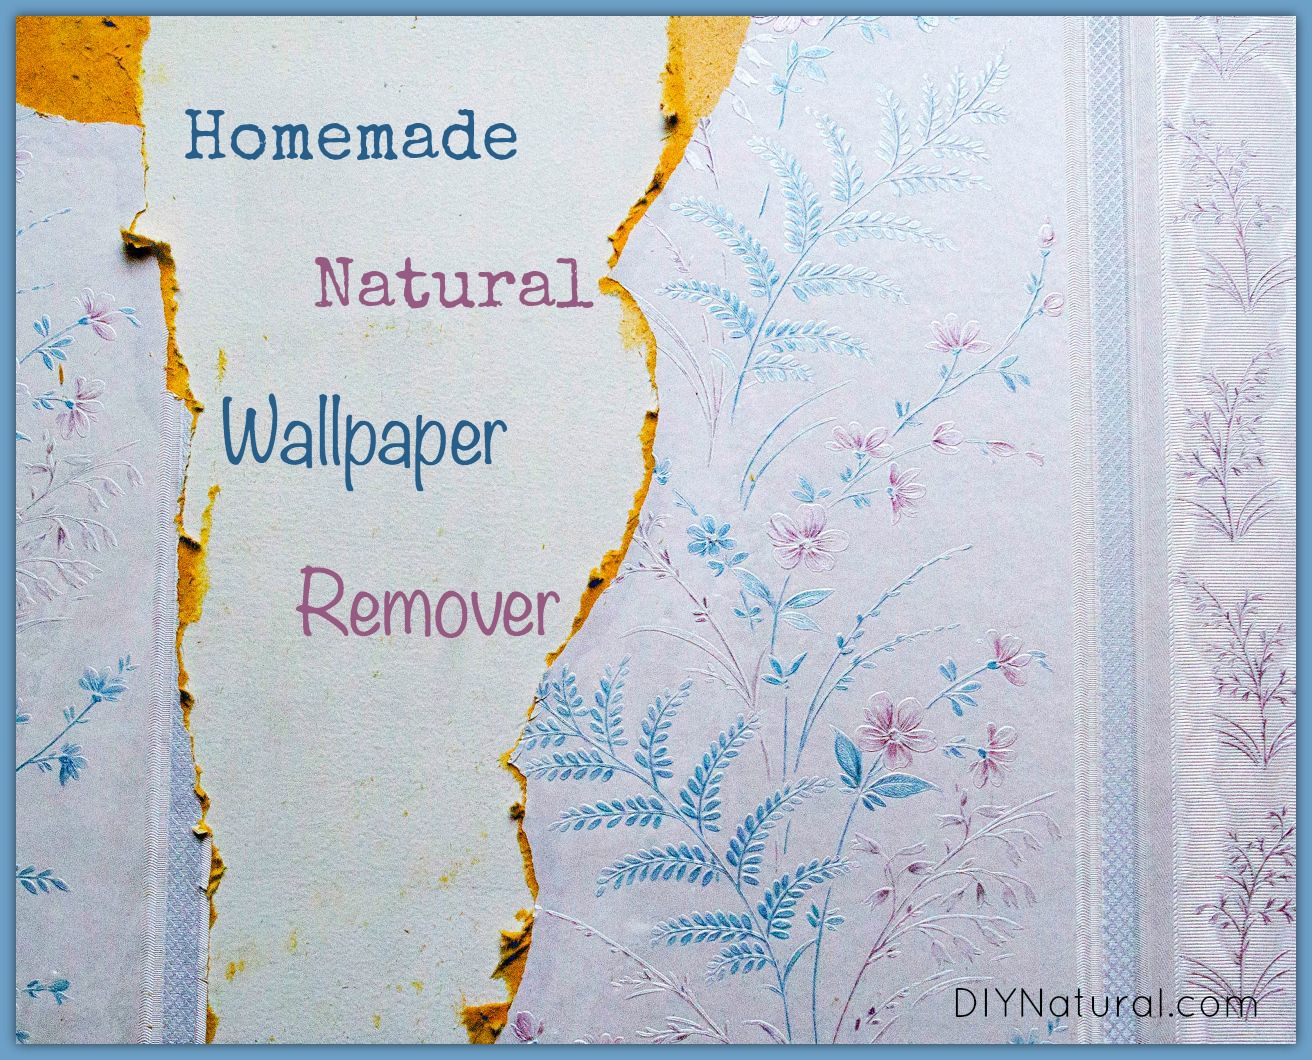 How to remove wallpaper paste from sheetrock - How To Remove Wallpaper Paste From Sheetrock 46